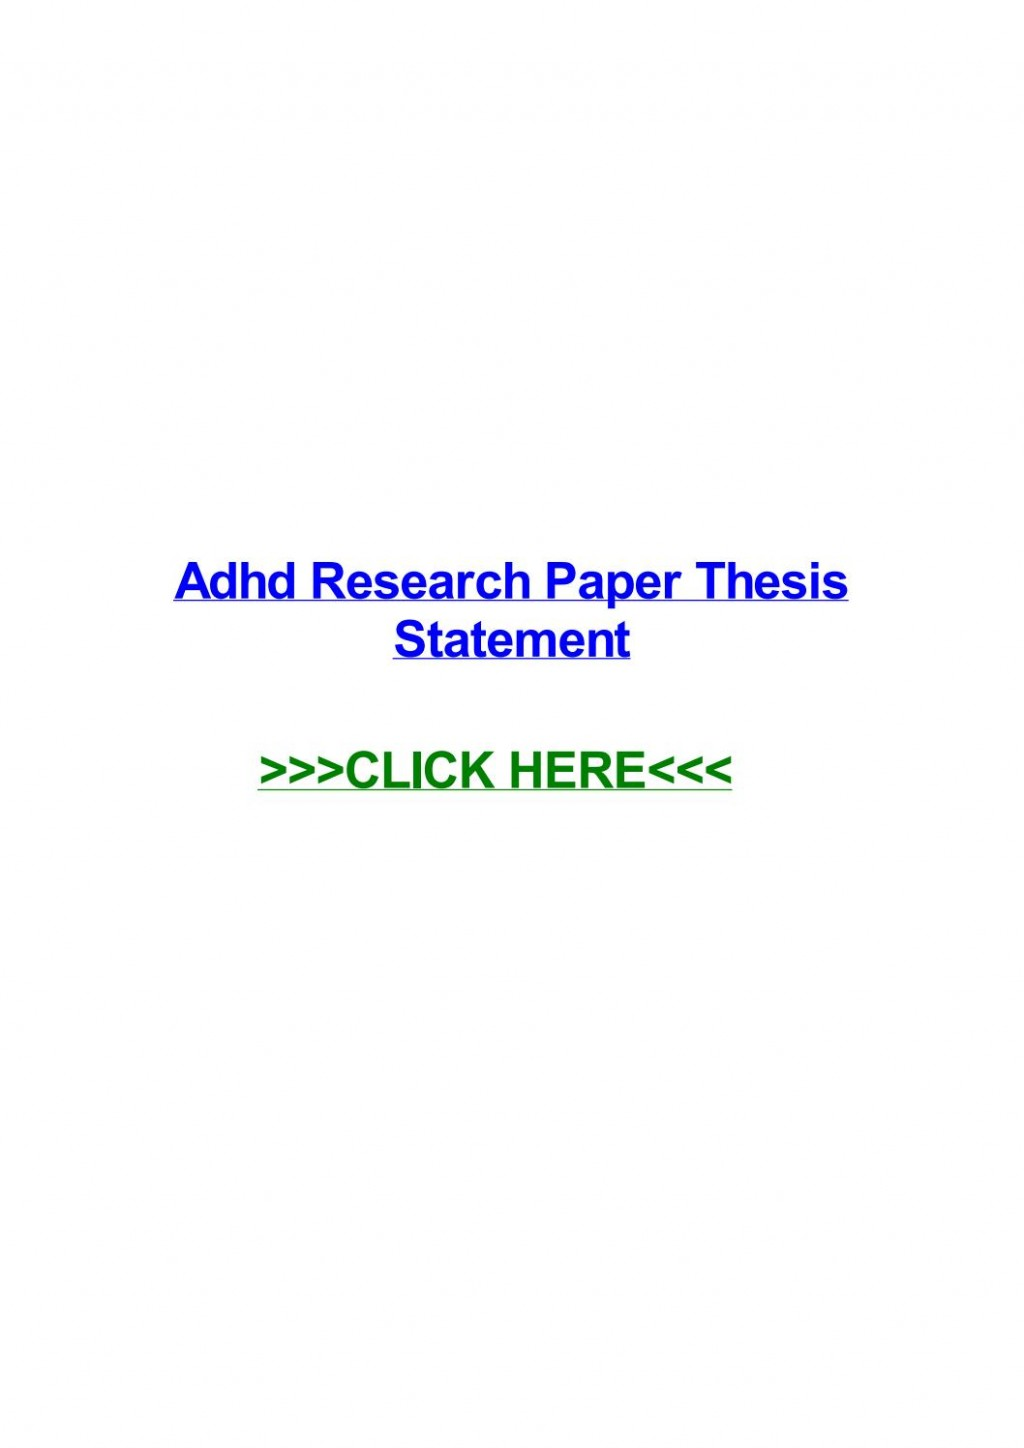 015 Research Paper Adhd Thesis Page 1 Formidable Statement Large